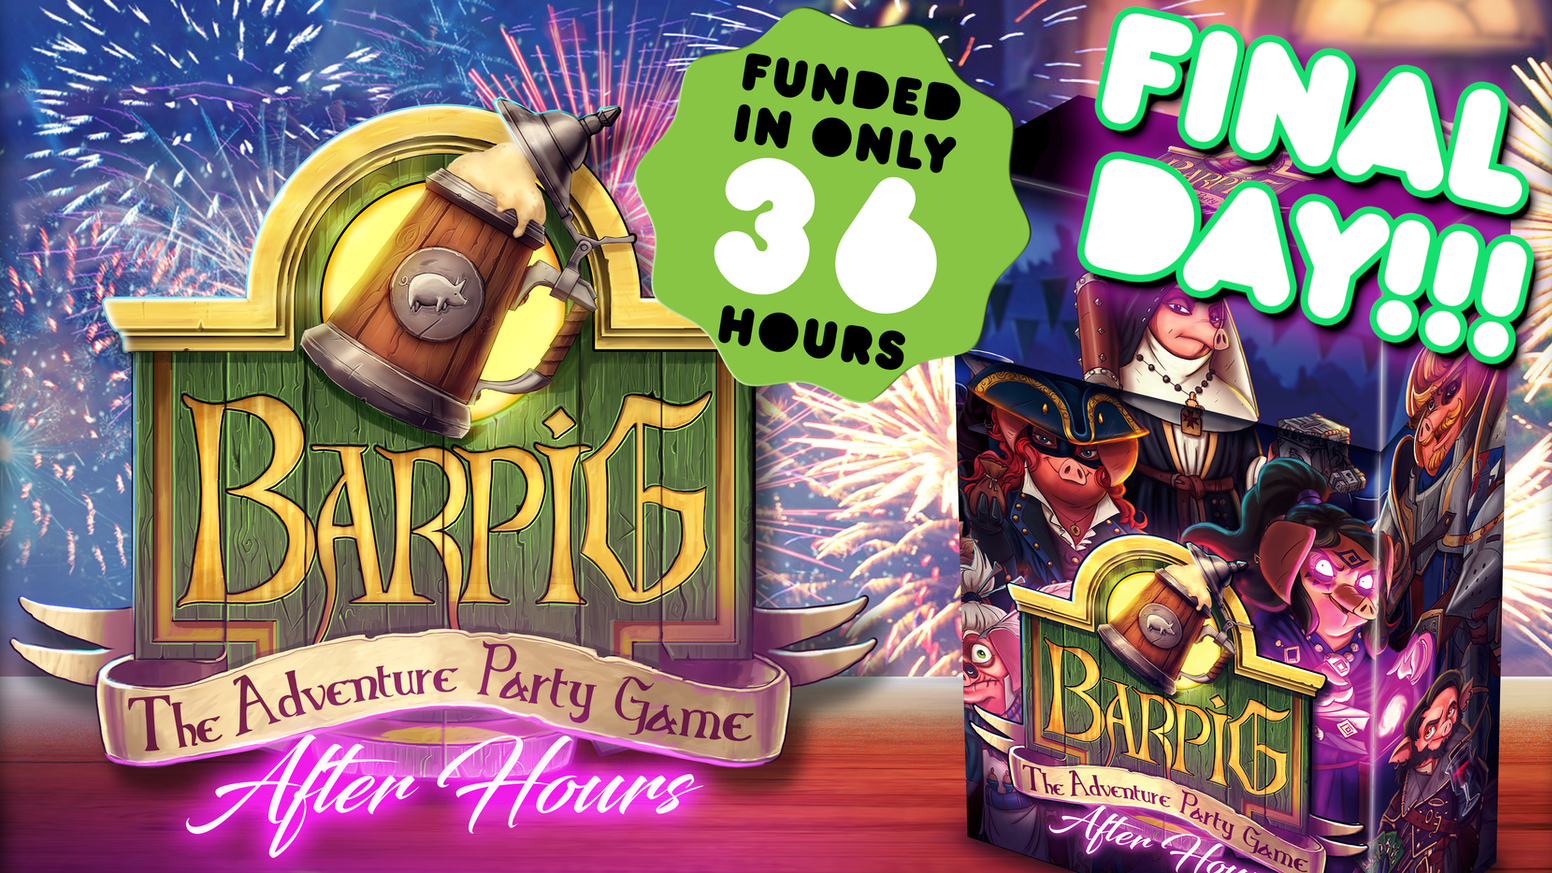 BARPIG: After Hours is the sequel to the highly successful BARPIG - The Adventure Party Game. Playable stand-alone or as an expansion.